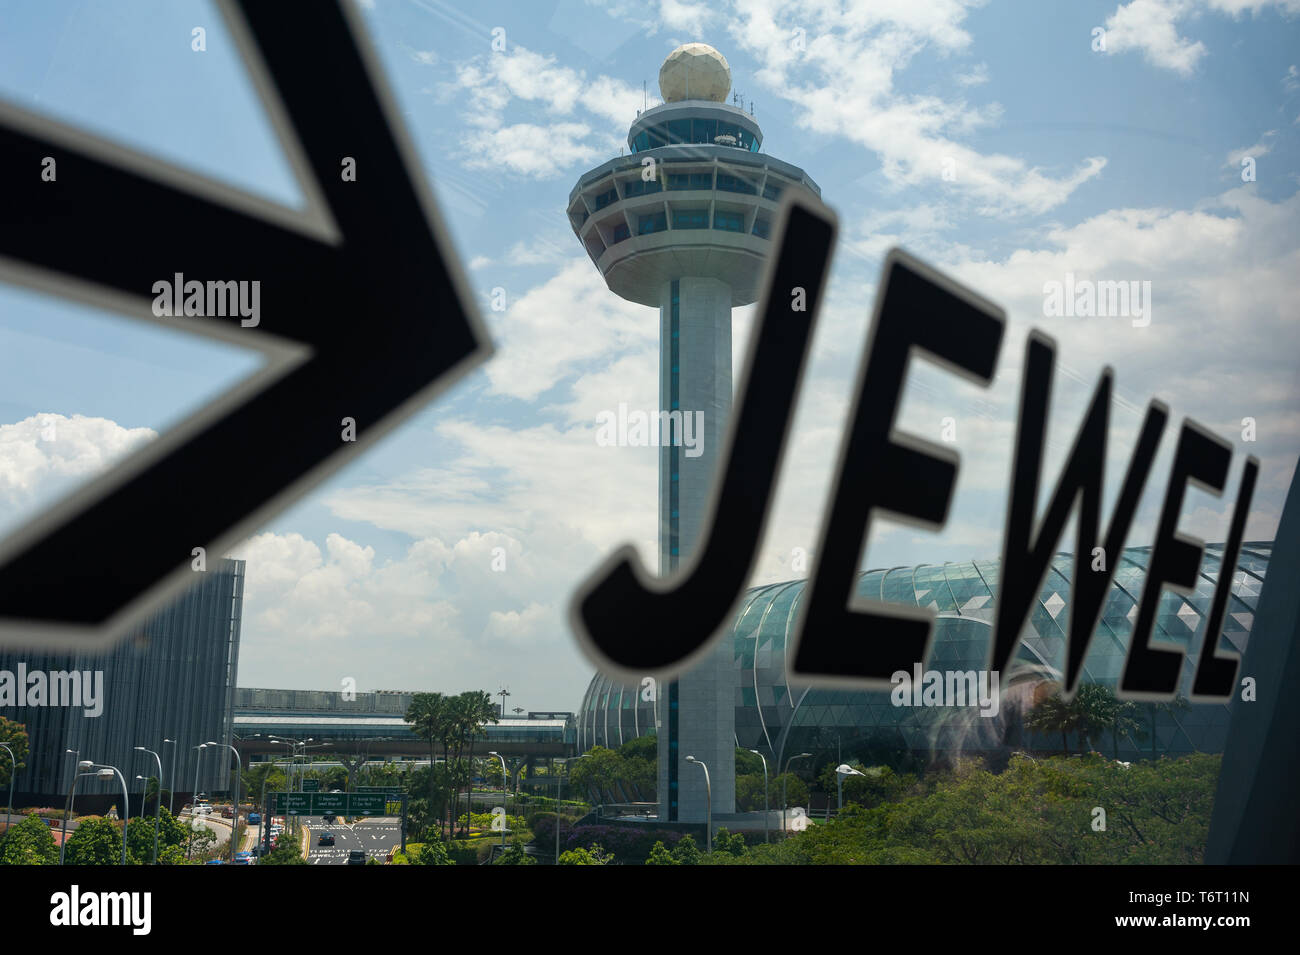 18.04.2019, Singapore, Republic of Singapore, Asia - View of the new Jewel terminal with the Changi Airport Control Tower. - Stock Image